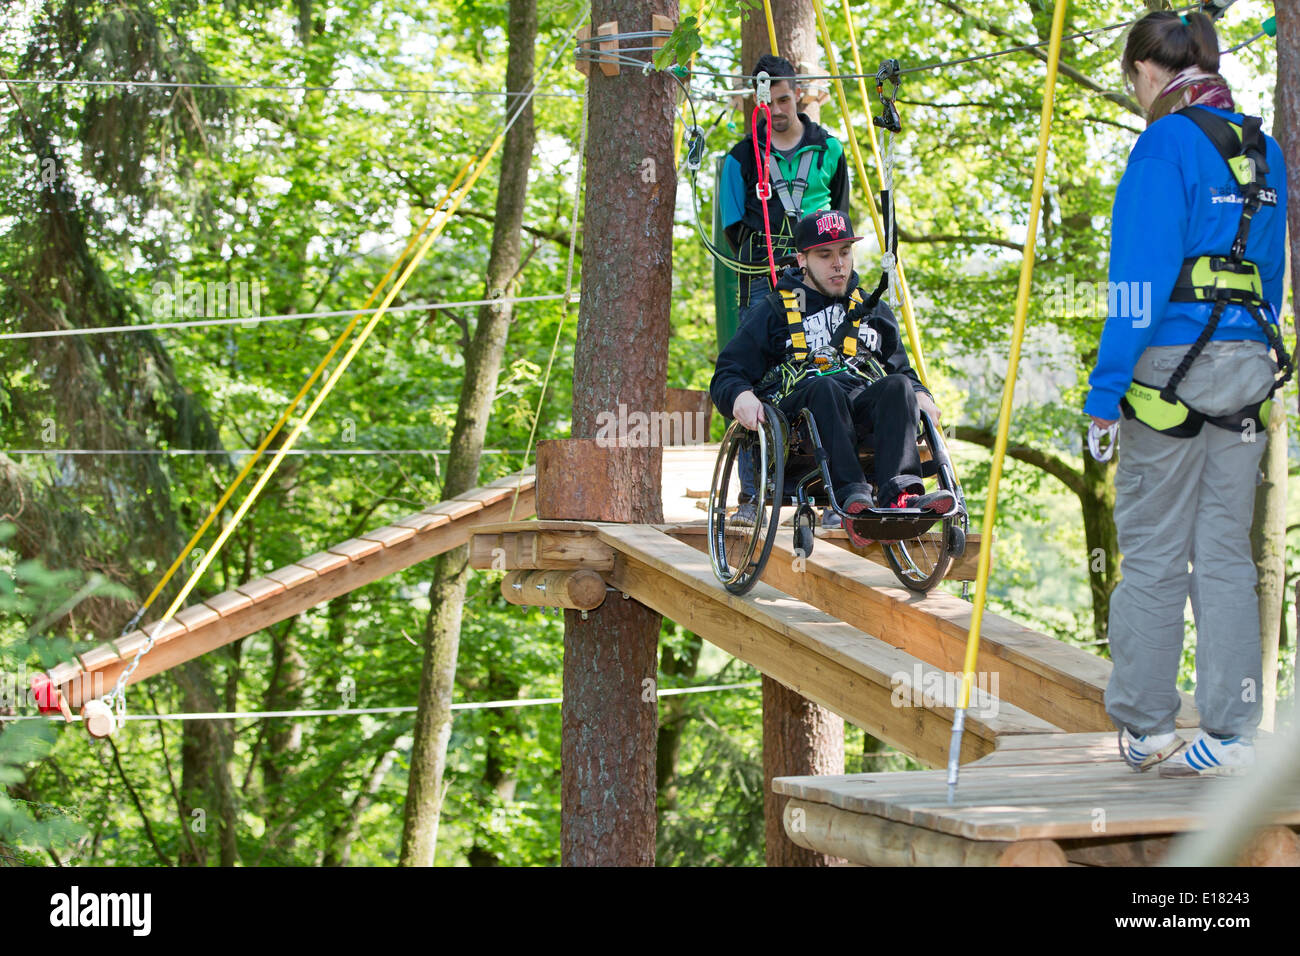 Schwarzenbruck, Germany. 14th May, 2014. Johannes Waltinger (C) rolls over an obstacle in his wheelchair at the forest ropes course (Waldseilpark) in Schwarzenbruck, Germany, 14 May 2014. Two high ropes courses in Germany now offer their experience to persons with disabilities, too. This is made possible by specially trained helpers. Photo: Daniel Karmann/dpa/Alamy Live News - Stock Image